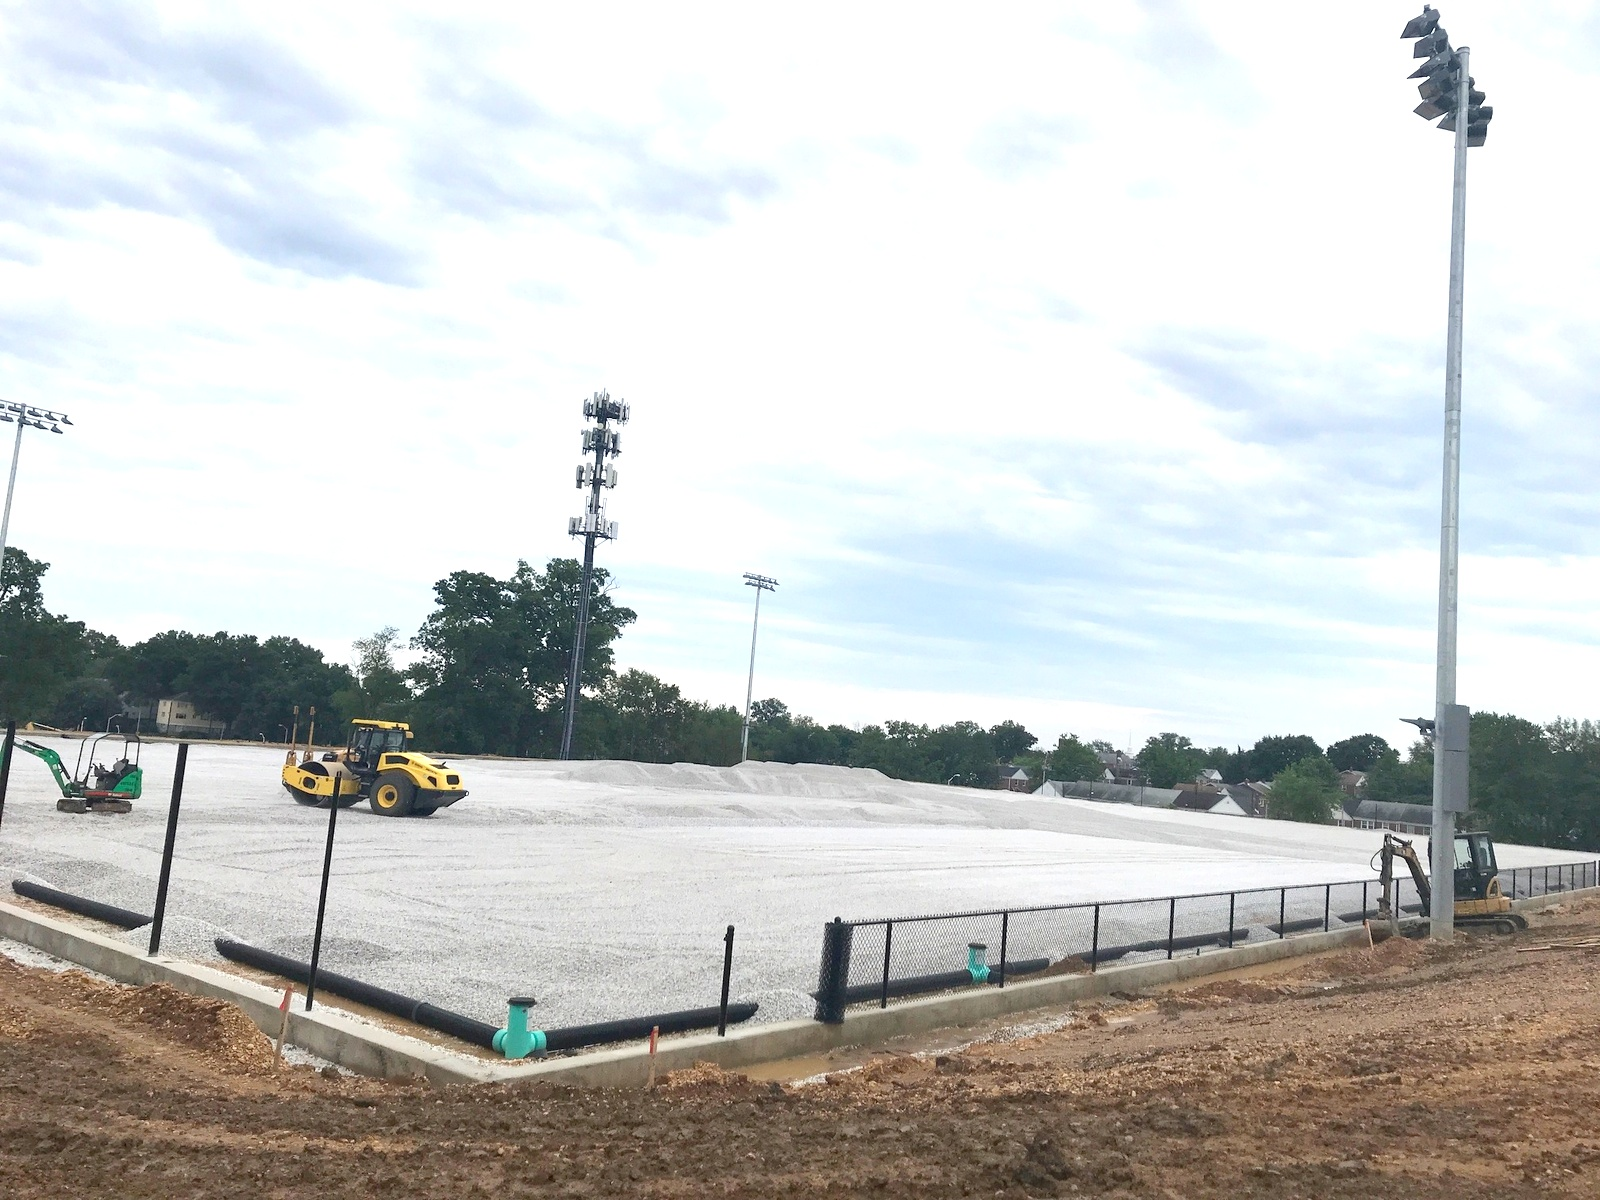 The $4 million stadium and turf field now underway at Mercy High School. (Mark Reutter)